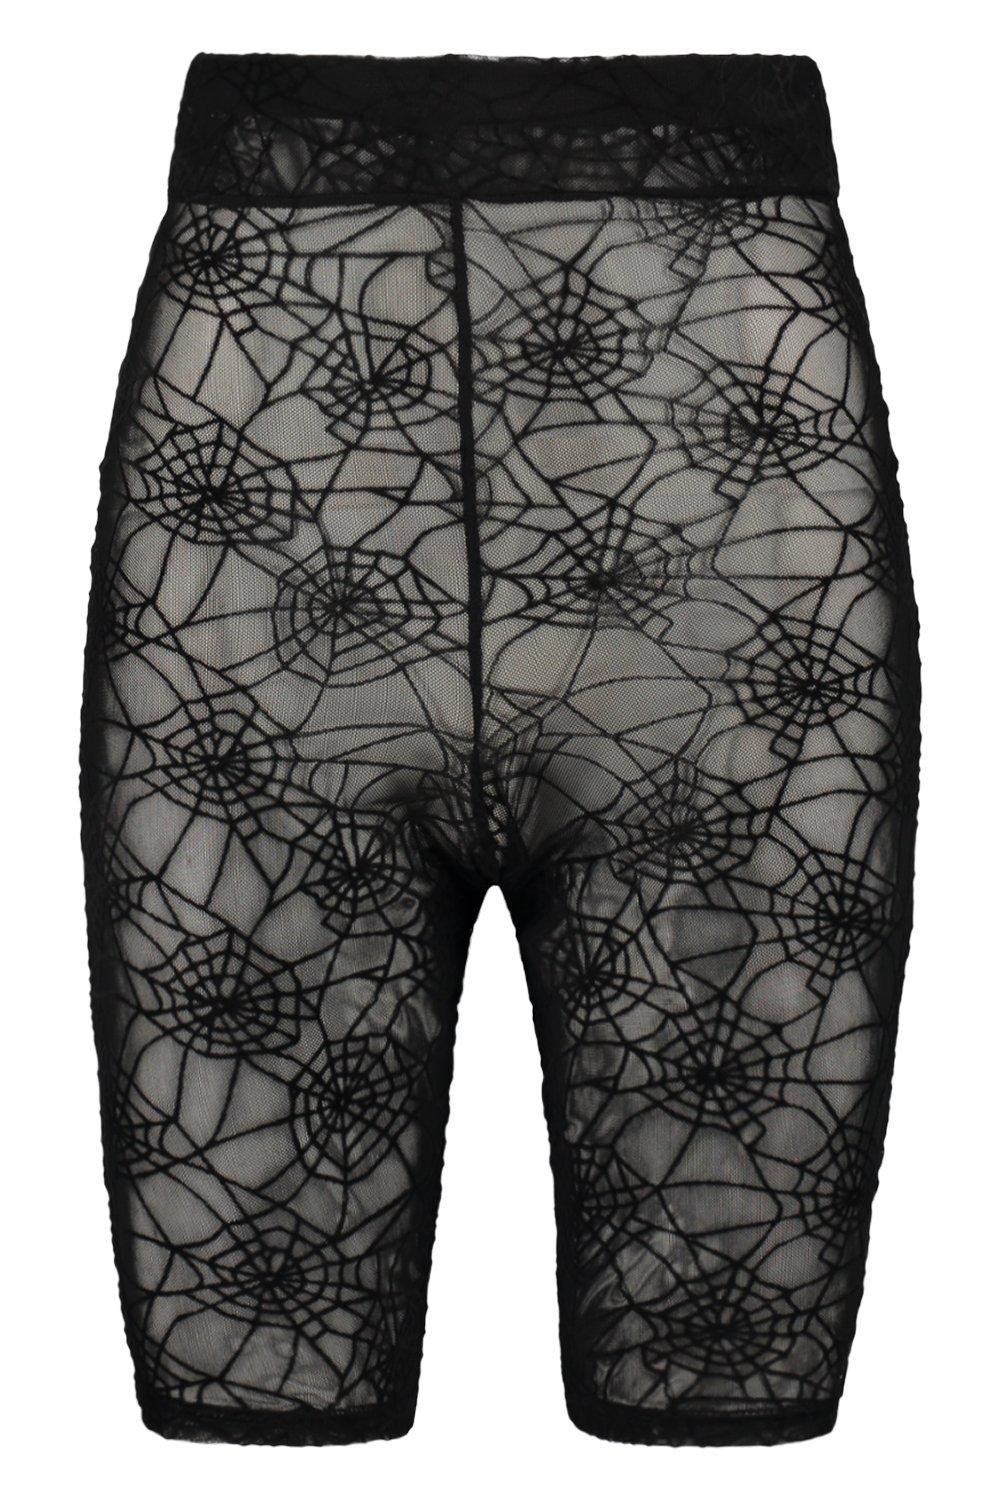 black Short Lace Web Halloween Spider Cycling qORCRvw